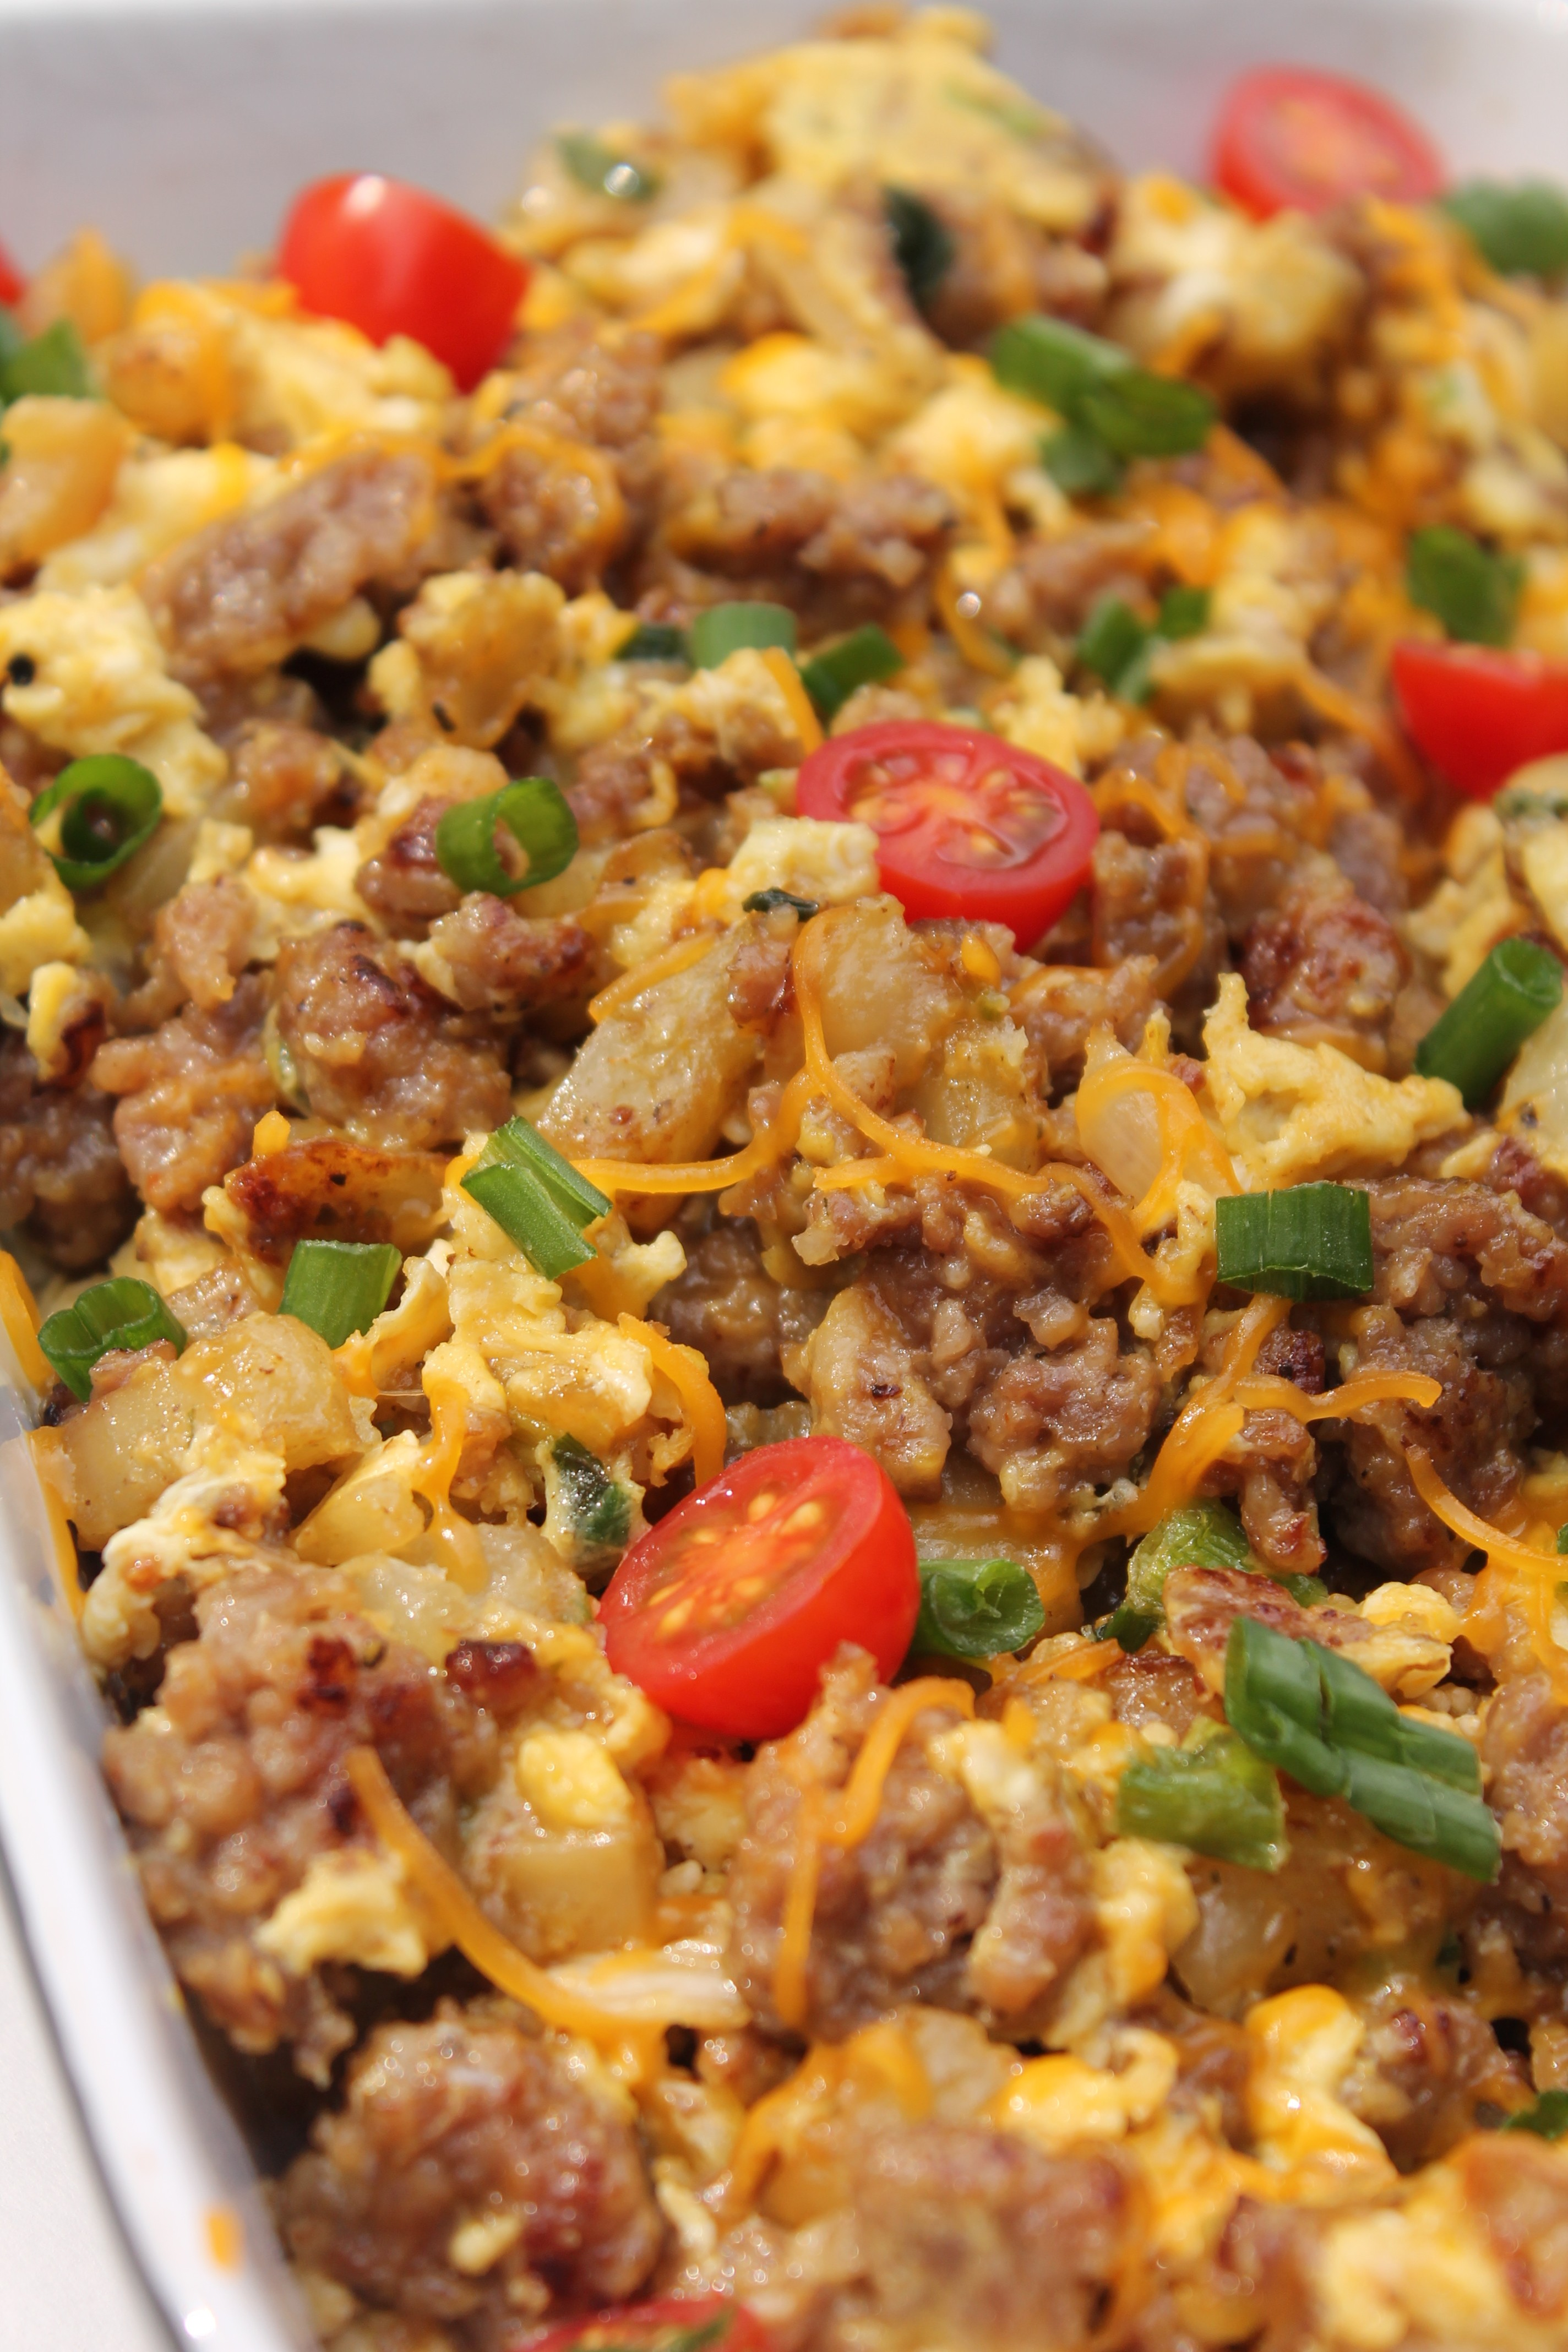 Breakfast Sausage Potato And Egg Scramble